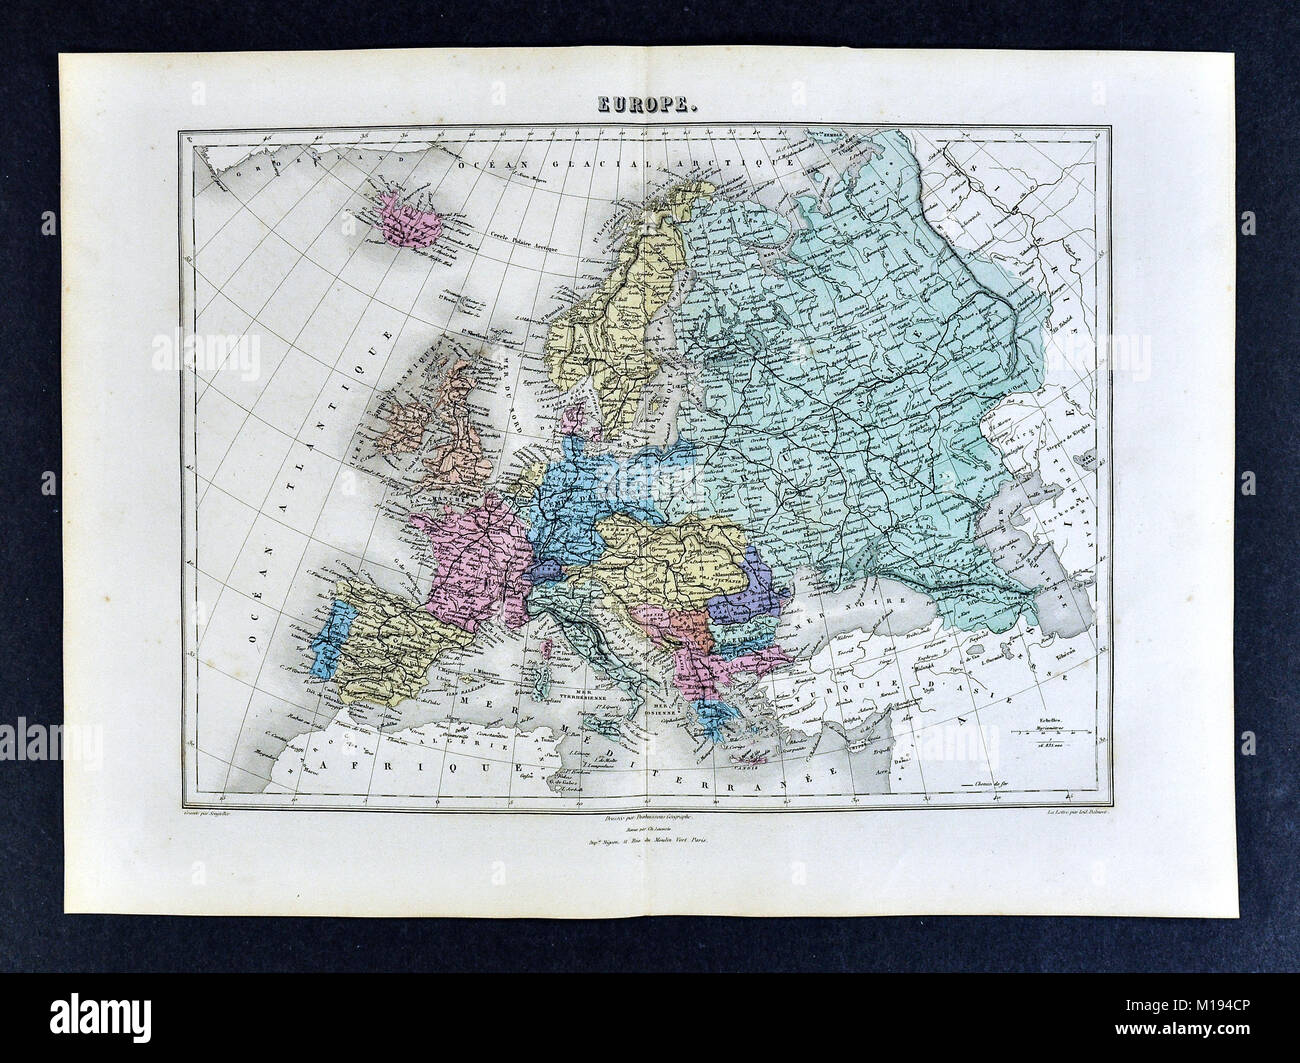 Map Of Spain Portugal And Italy.1877 Migeon Map Europe France Germany Italy Spain Russia Austria